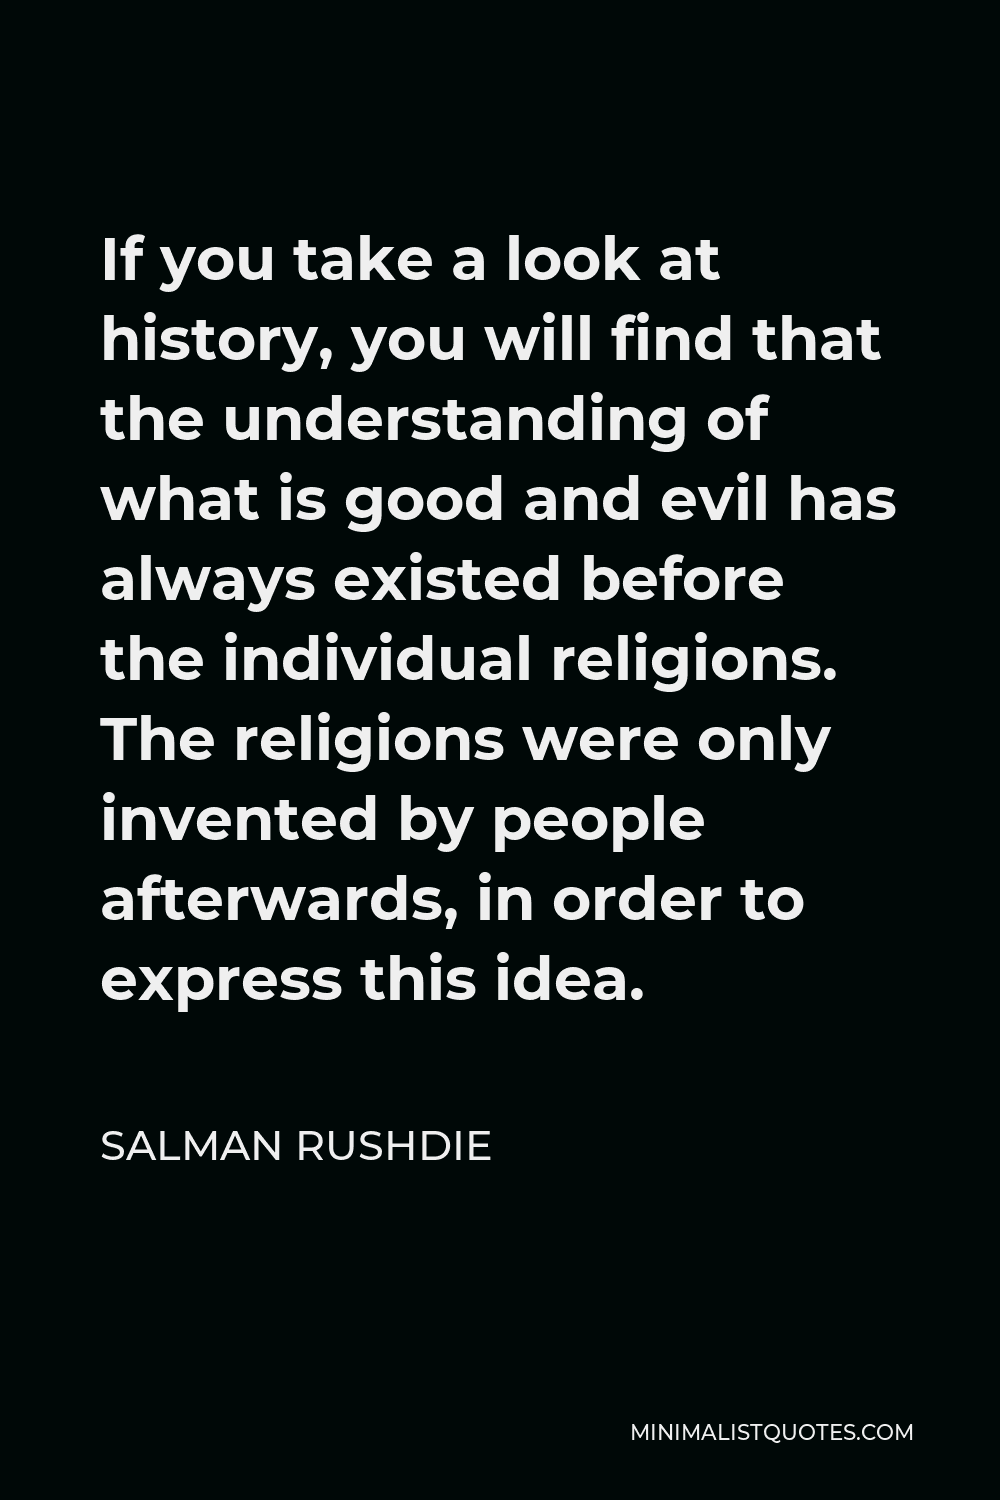 Salman Rushdie Quote - If you take a look at history, you will find that the understanding of what is good and evil has always existed before the individual religions. The religions were only invented by people afterwards, in order to express this idea.